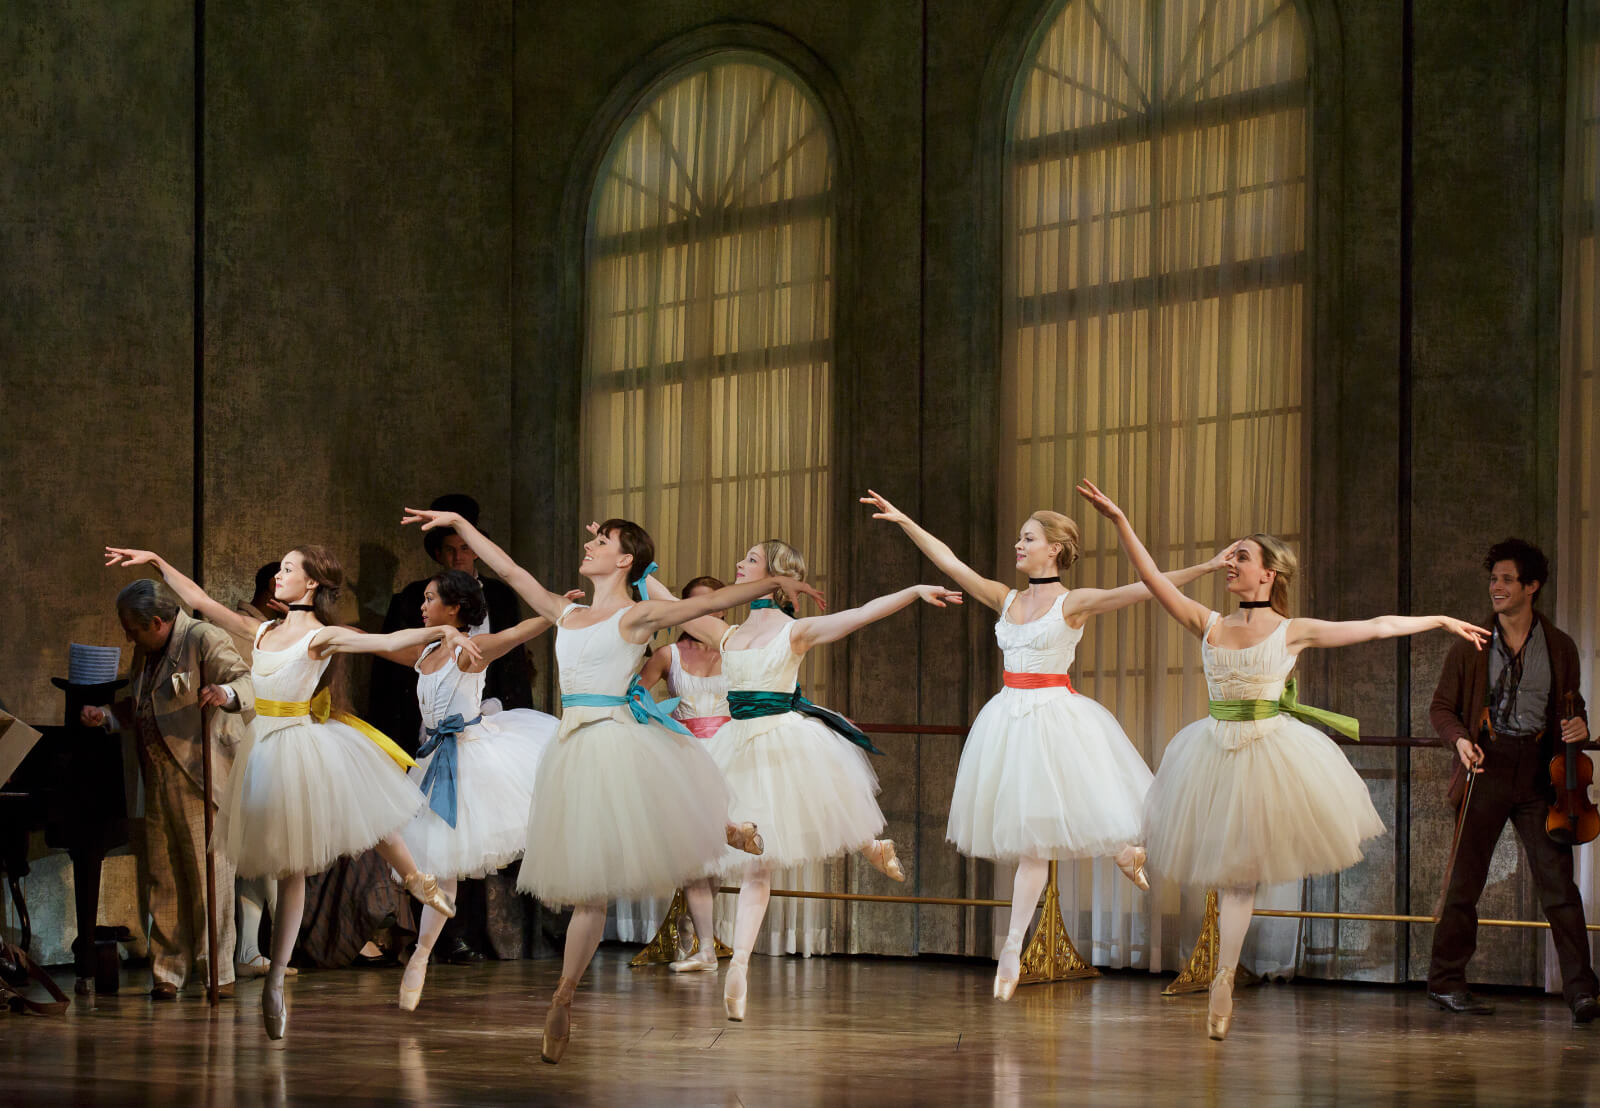 Marie and other ballerinas wearing white ballet outfits with matching colorful hair and belt bows, practicing in a ballet studio with huge windows. A man holding his violin is looking very happy at the back.